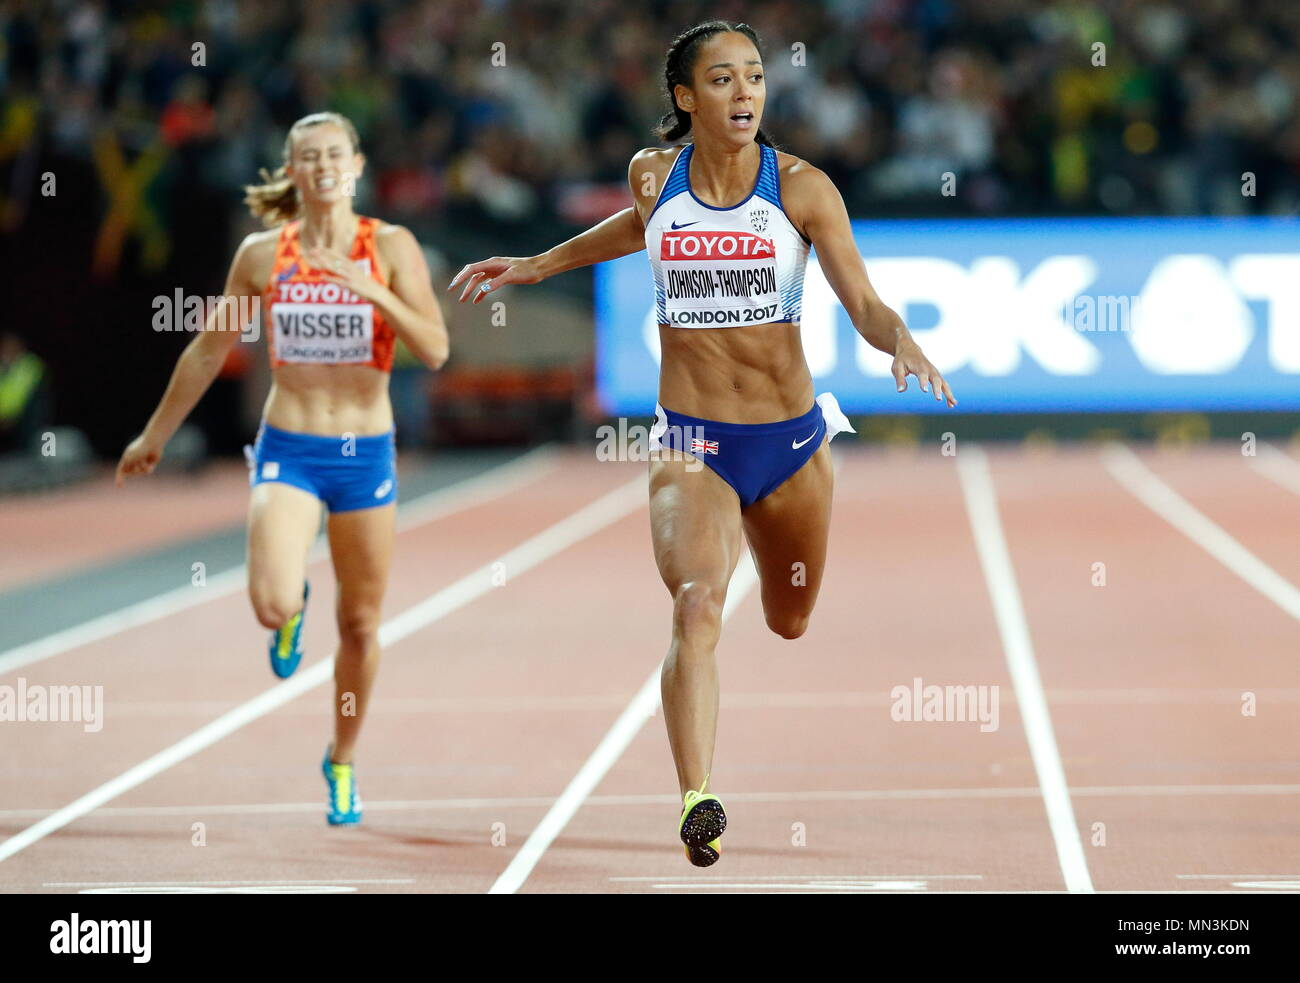 LONDON, ENGLAND - AUGUST 05: Katarina Johnson-Thompson of Great Britain competing in the Women's 200m Heptathlon crosses the finish line for first place during day two of the 16th IAAF World Athletics Championships London 2017 at The London Stadium on August 5, 2017 in London, United Kingdom. Photo by Paul Cunningham - Stock Image